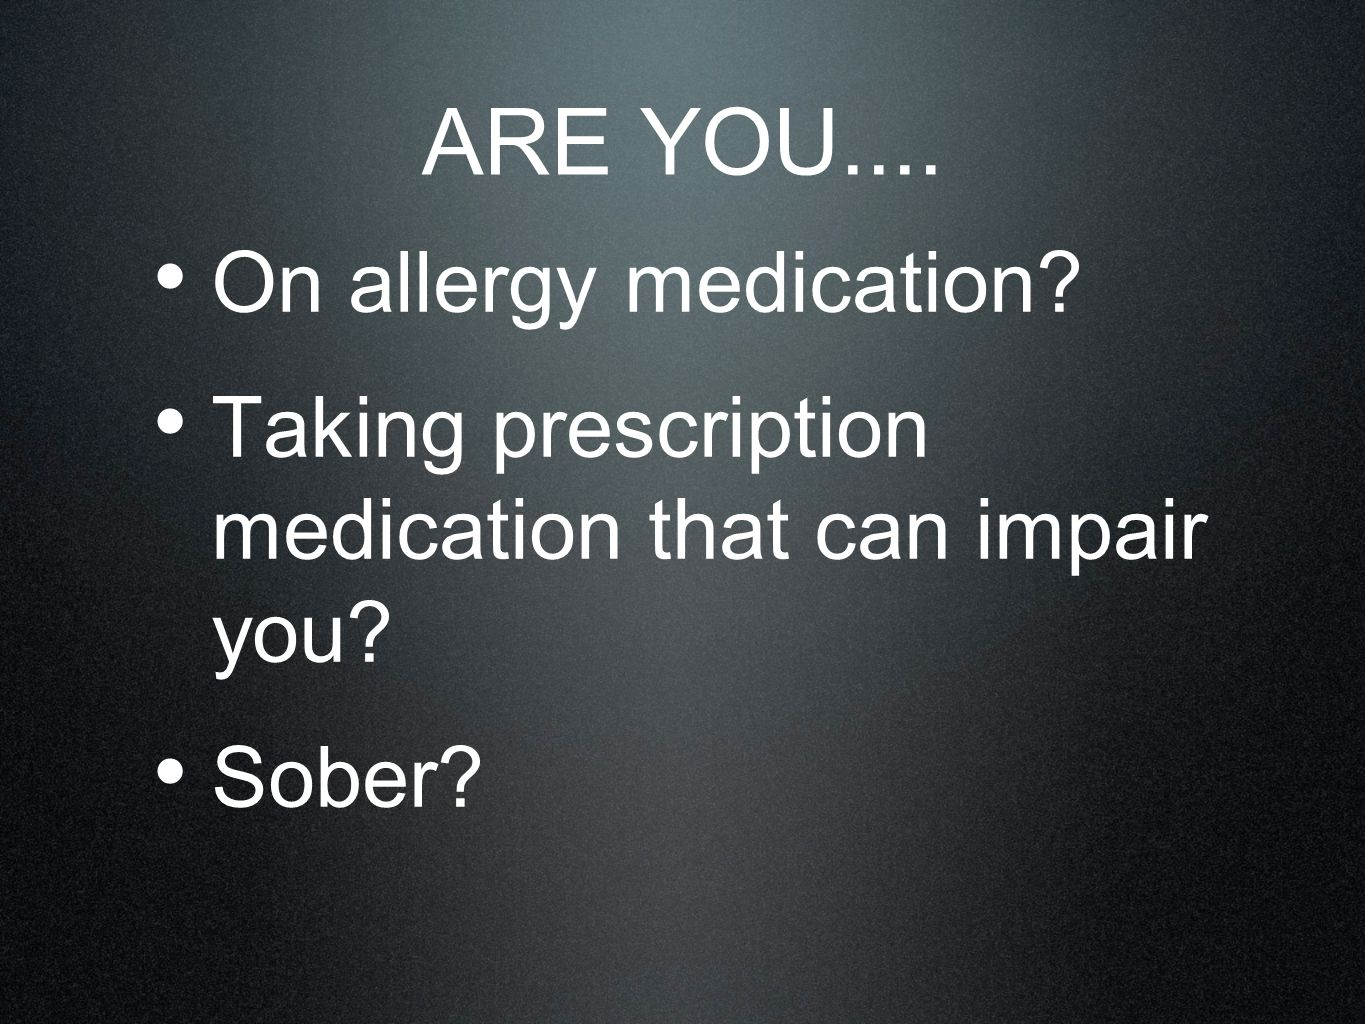 ARE YOU.... On allergy medication